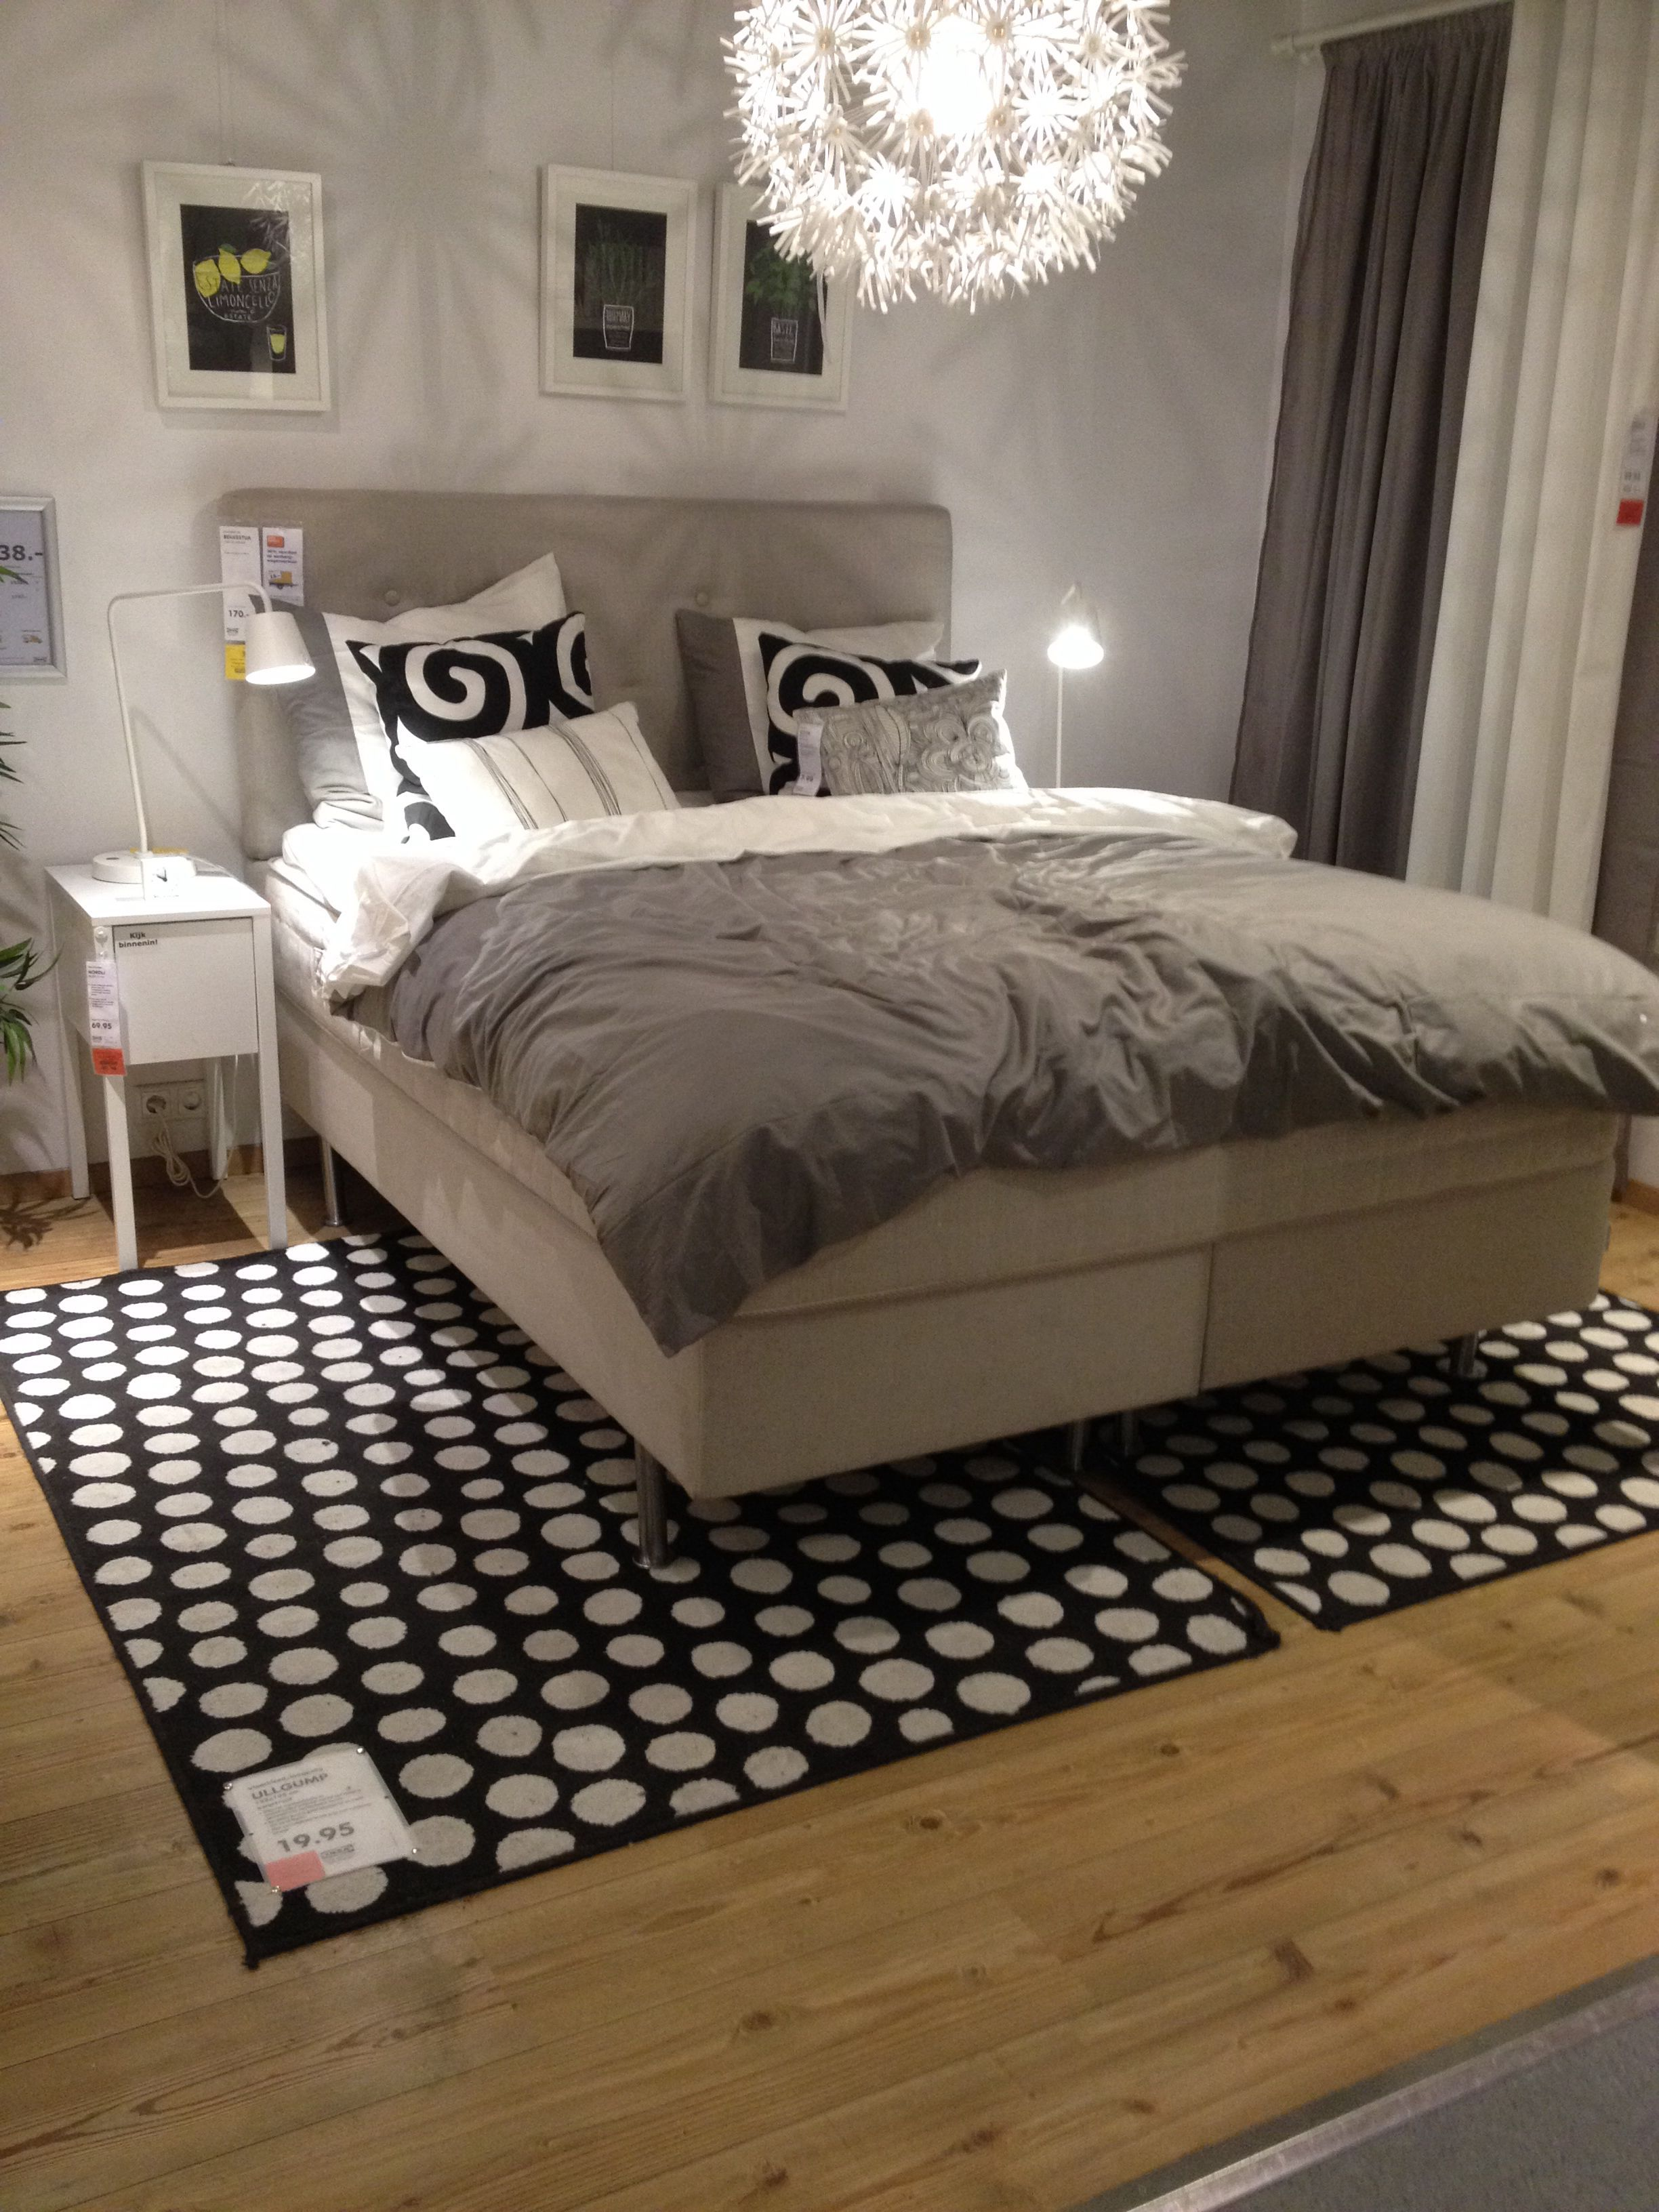 Boxspring Bedden Bij Ikea.Ikea Boxspring En Lamp Bedroom Ikea Love In 2019